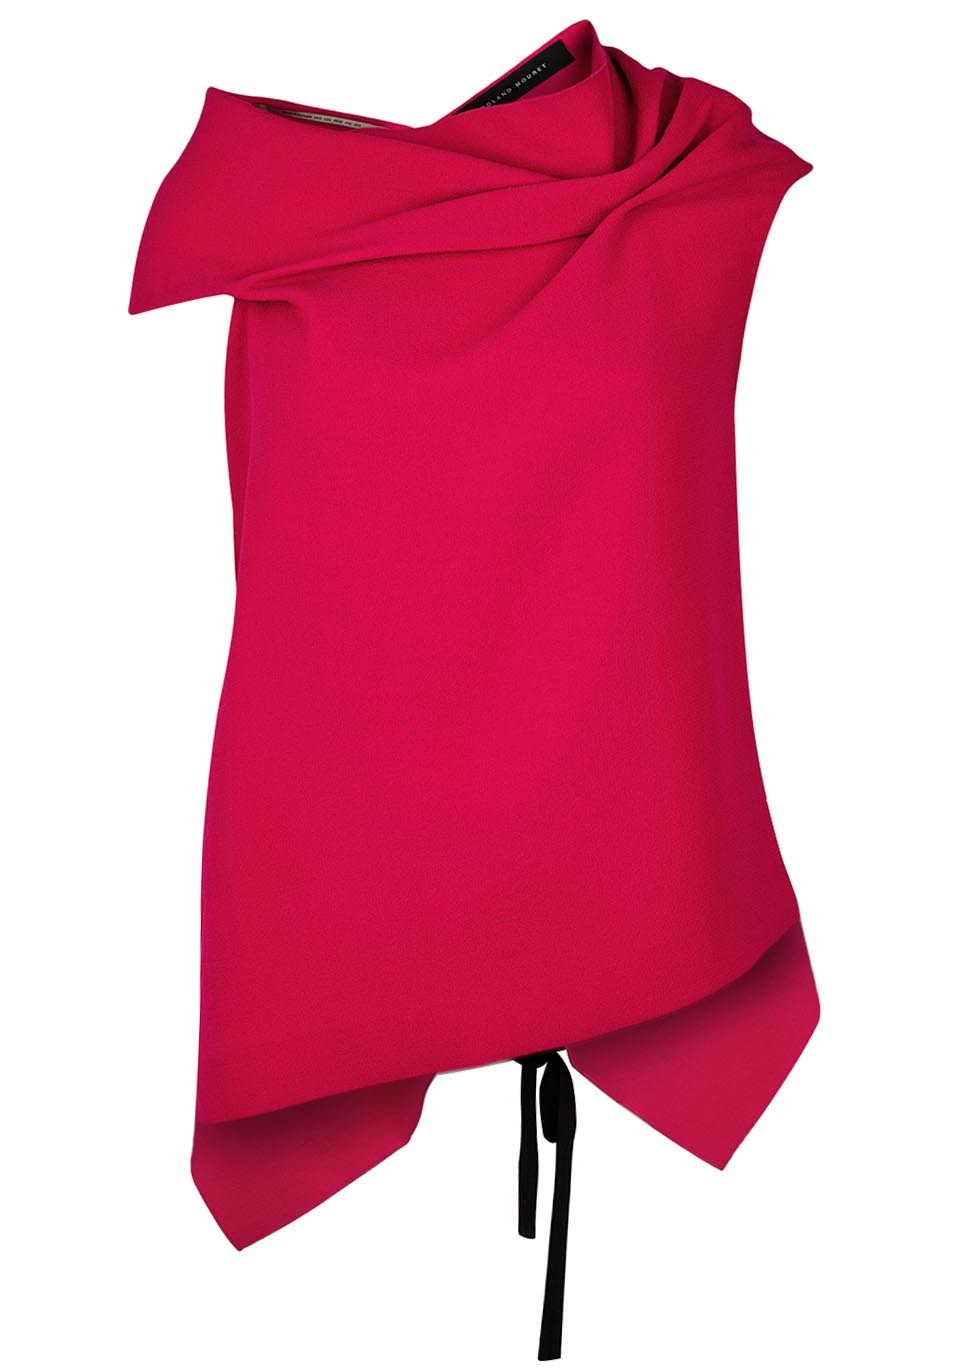 Eugene Fuchsia Open Back Wool Top - neckline: cowl/draped neck; sleeve style: capped; predominant colour: hot pink; secondary colour: black; occasions: evening, creative work; length: standard; style: top; fibres: wool - mix; fit: tailored/fitted; sleeve length: short sleeve; pattern type: fabric; pattern size: standard; pattern: colourblock; texture group: woven light midweight; season: a/w 2016; wardrobe: highlight; embellishment location: back